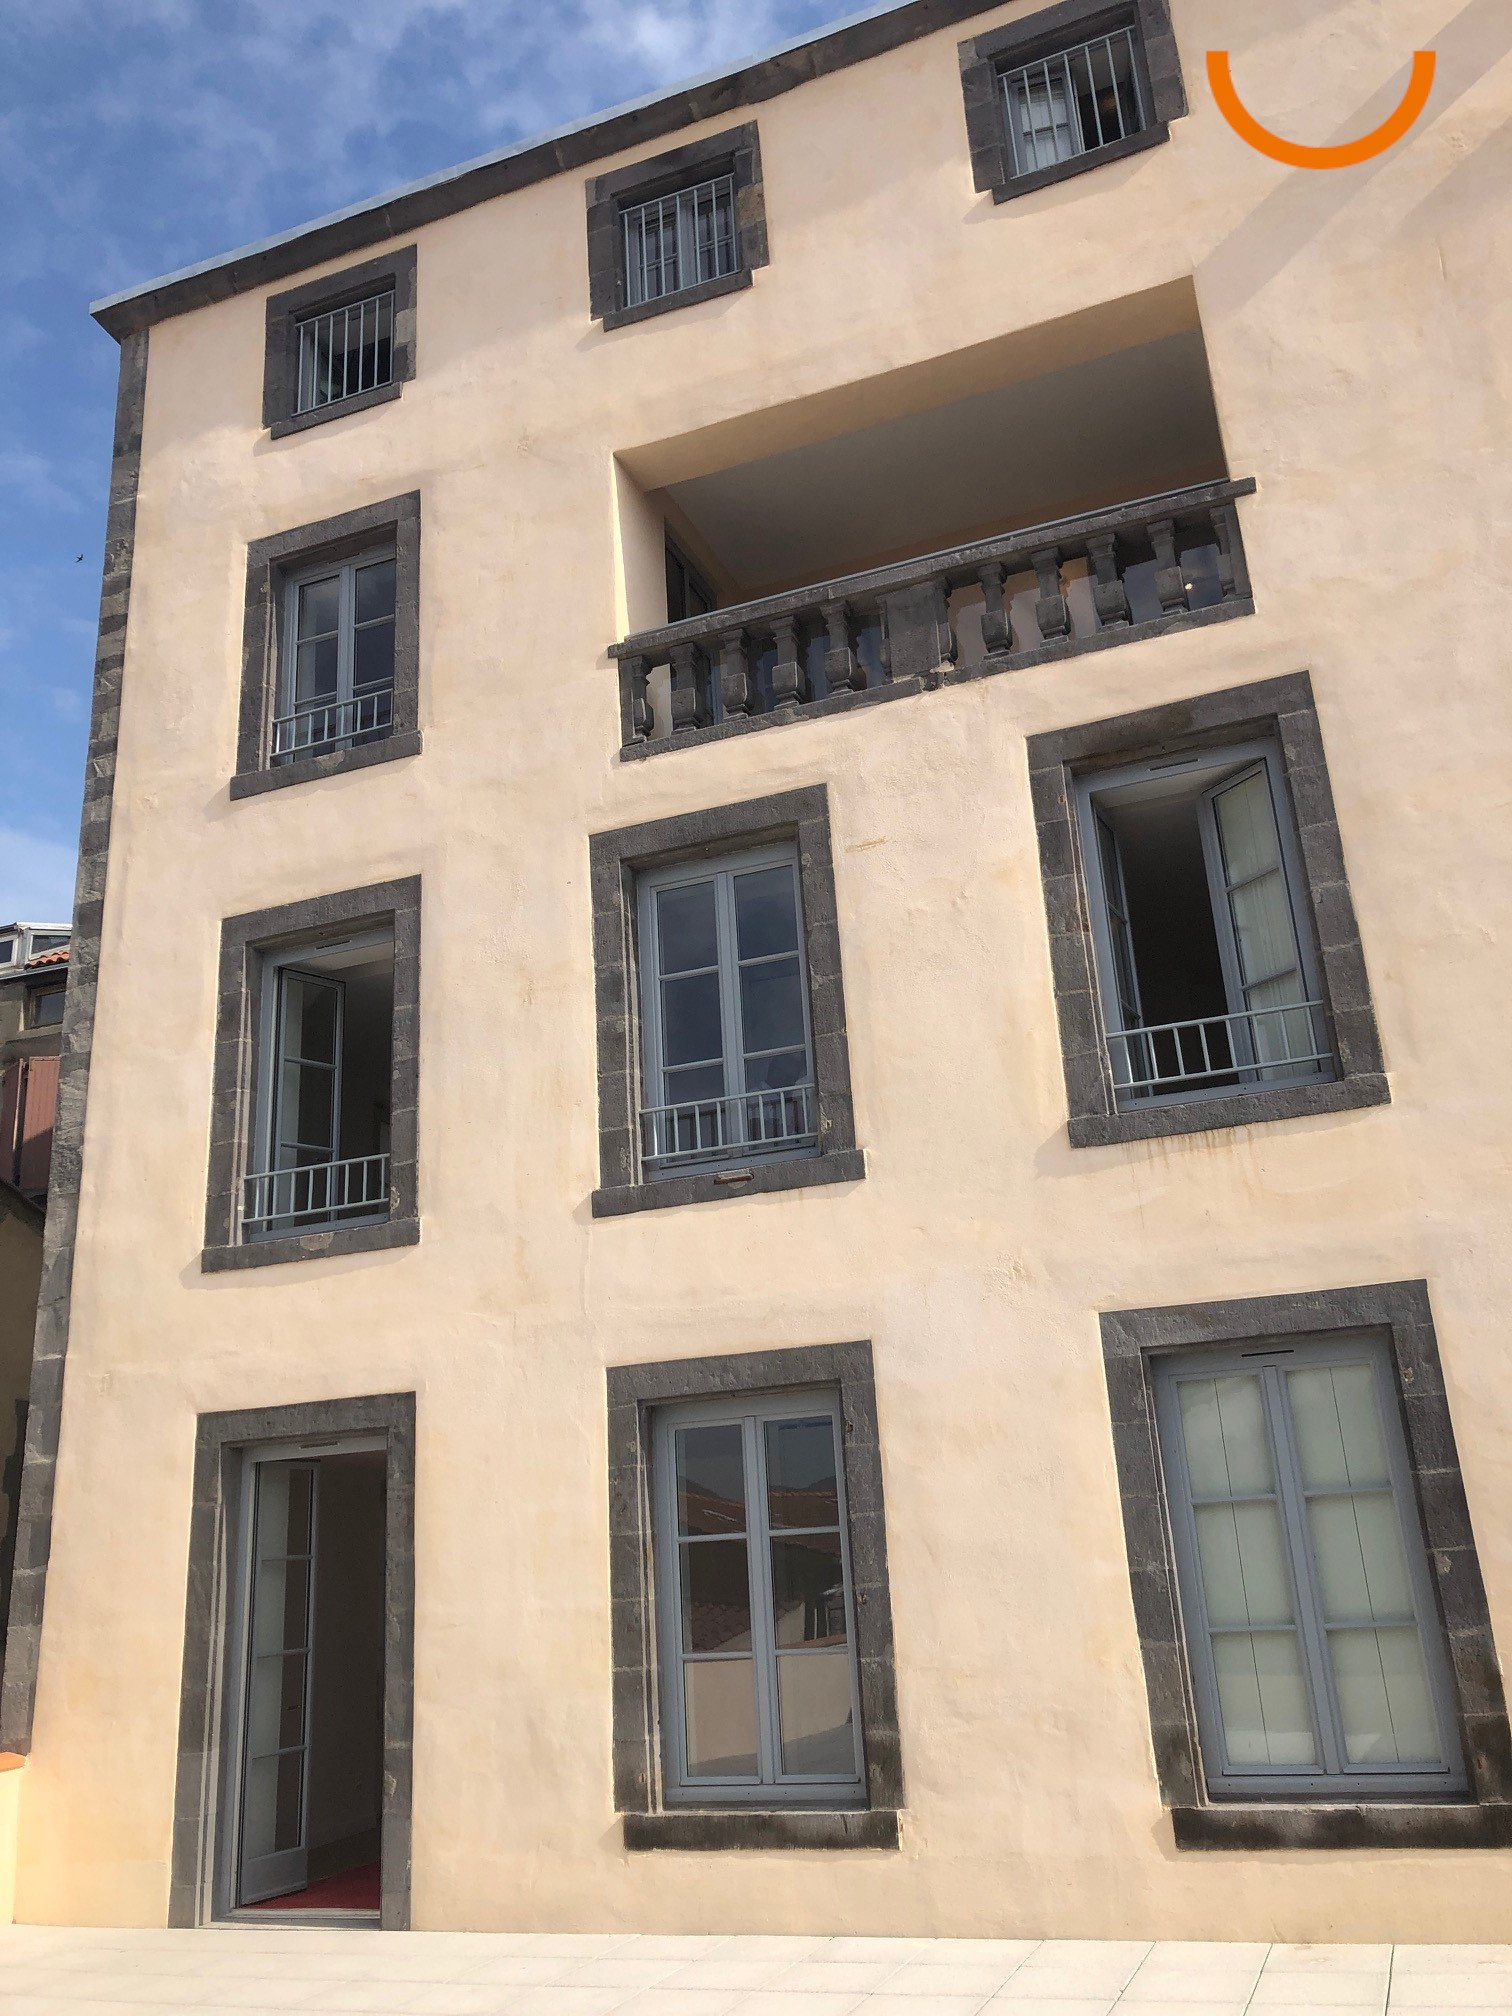 Location appartement à Clermont-Ferrand, surface de 32.4m²